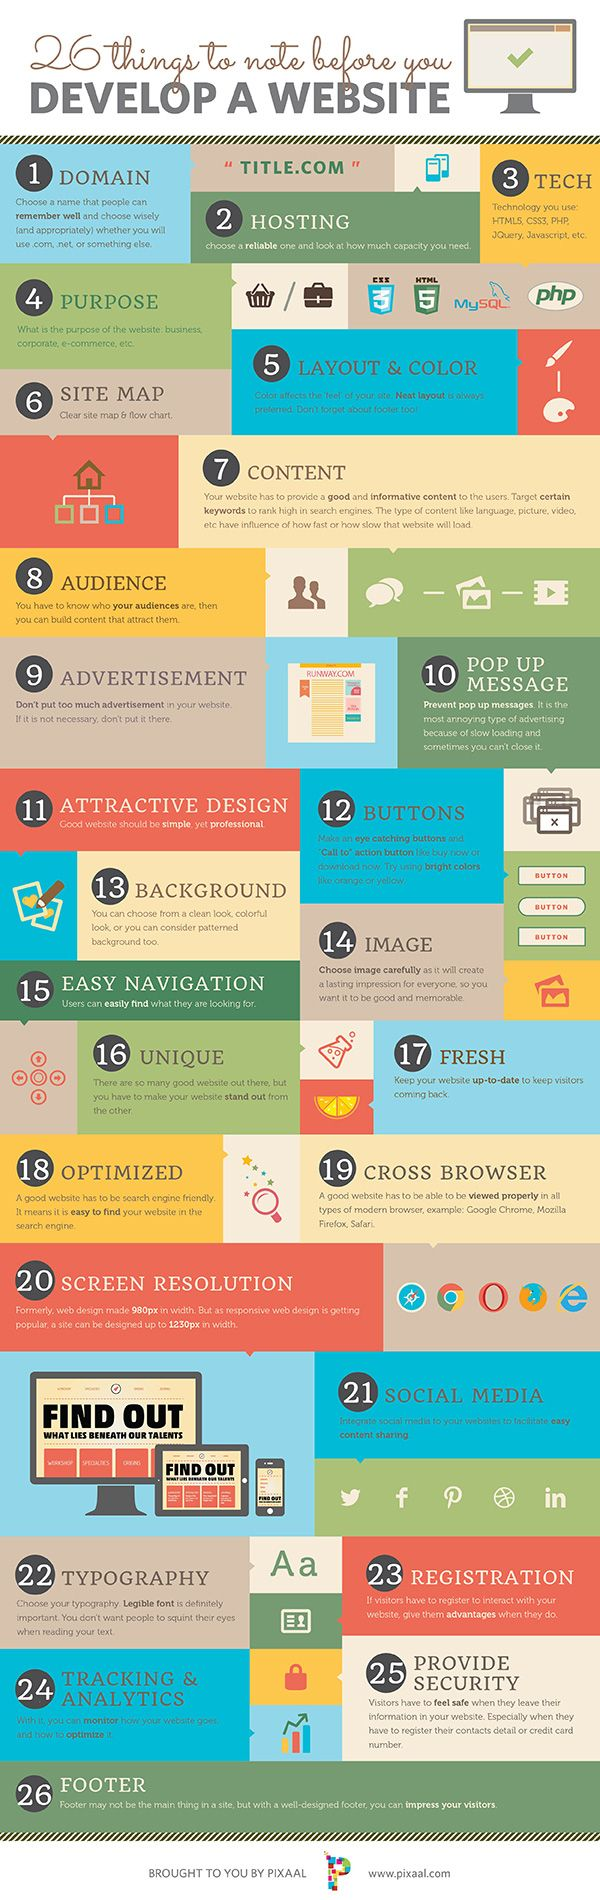 26 things to note before you build a Website